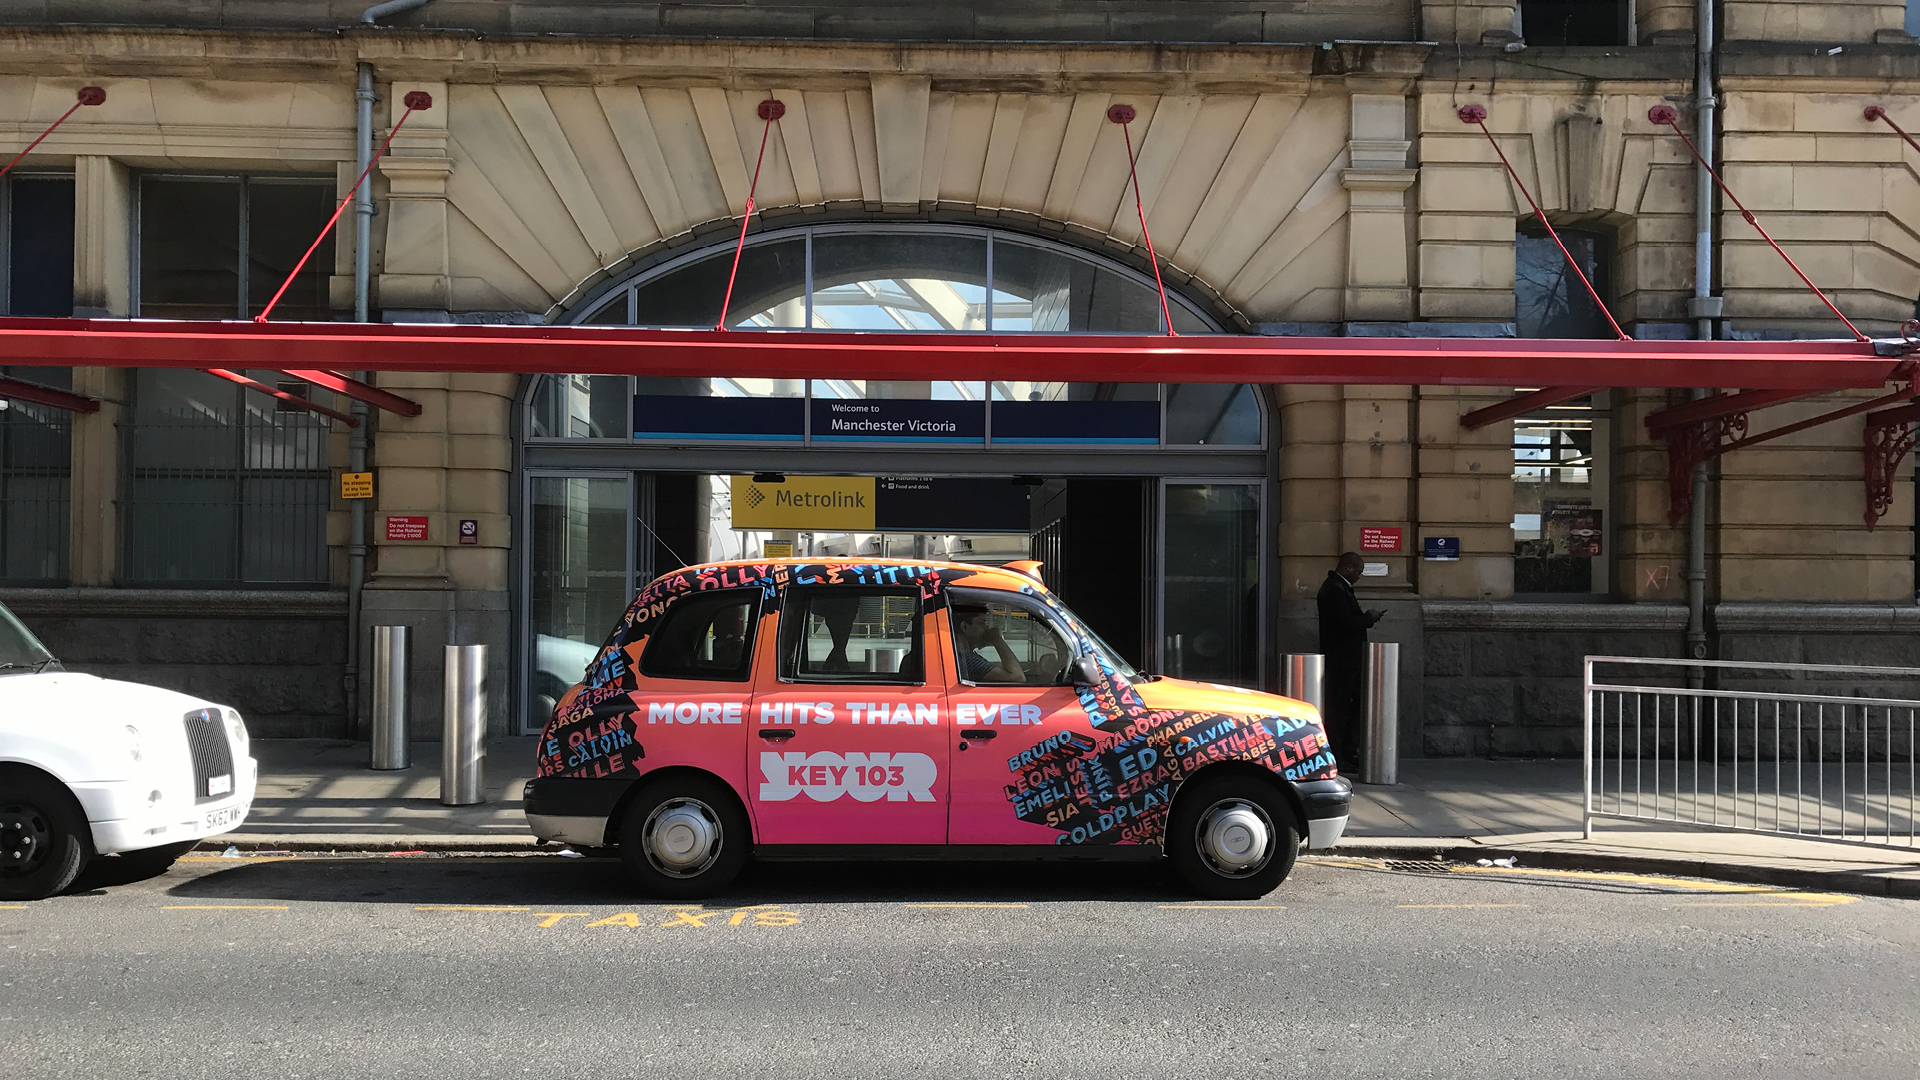 key 103 taxi advertising campaign